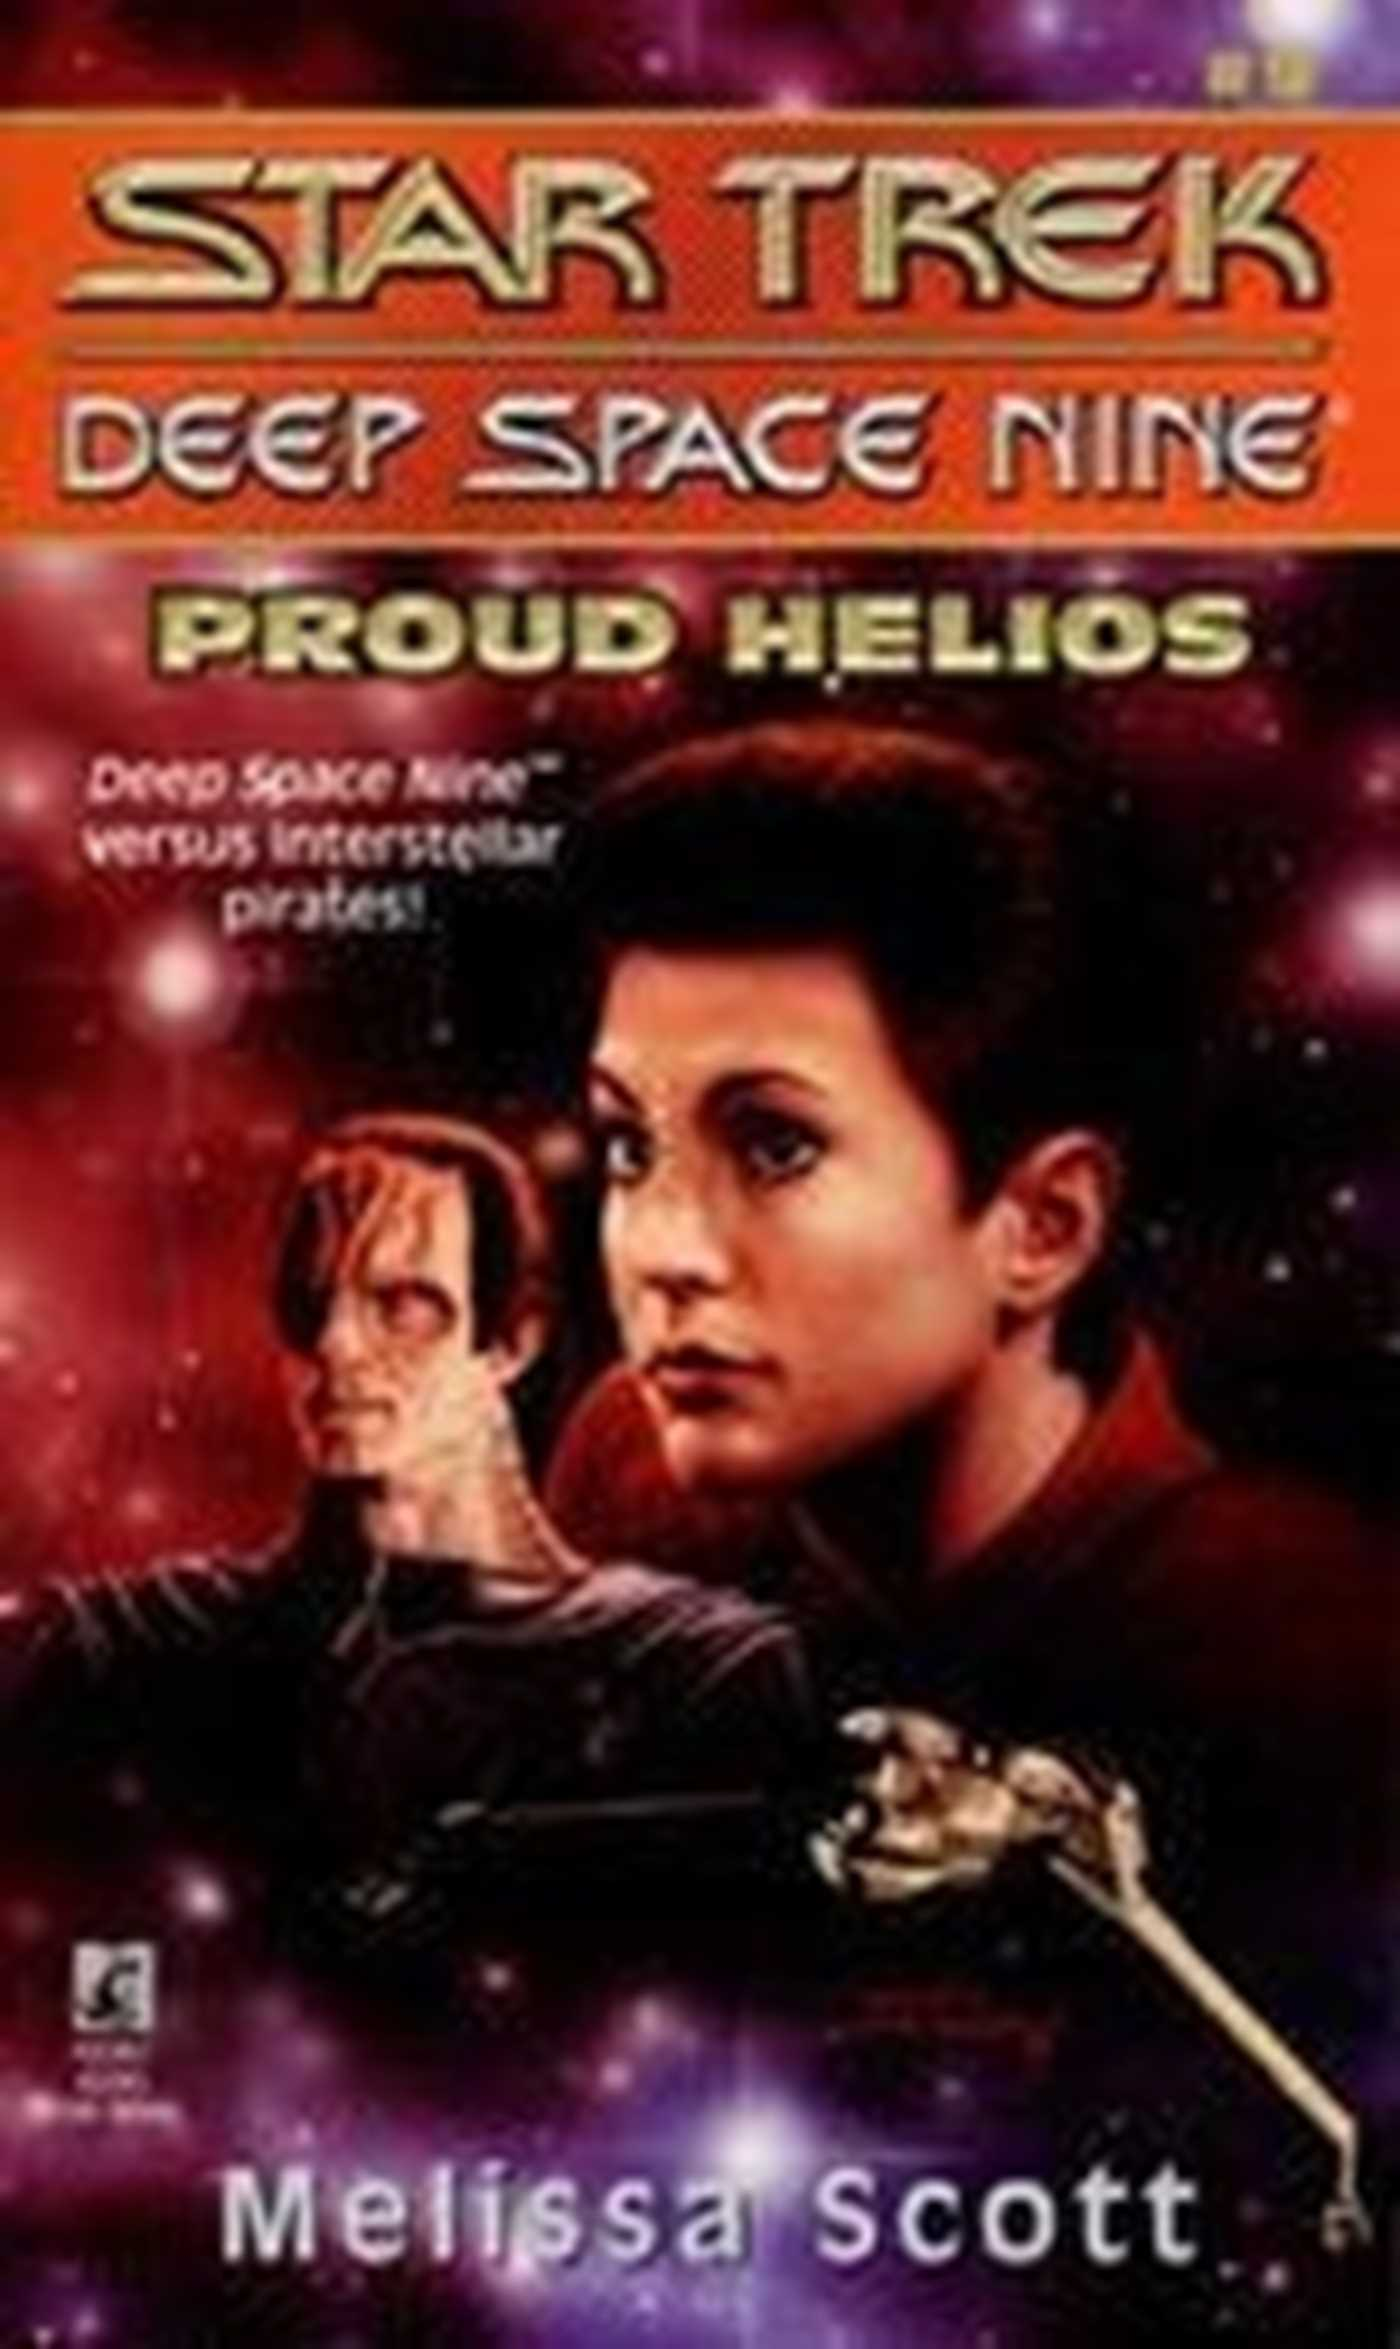 Proud-helios-9780743420402_hr